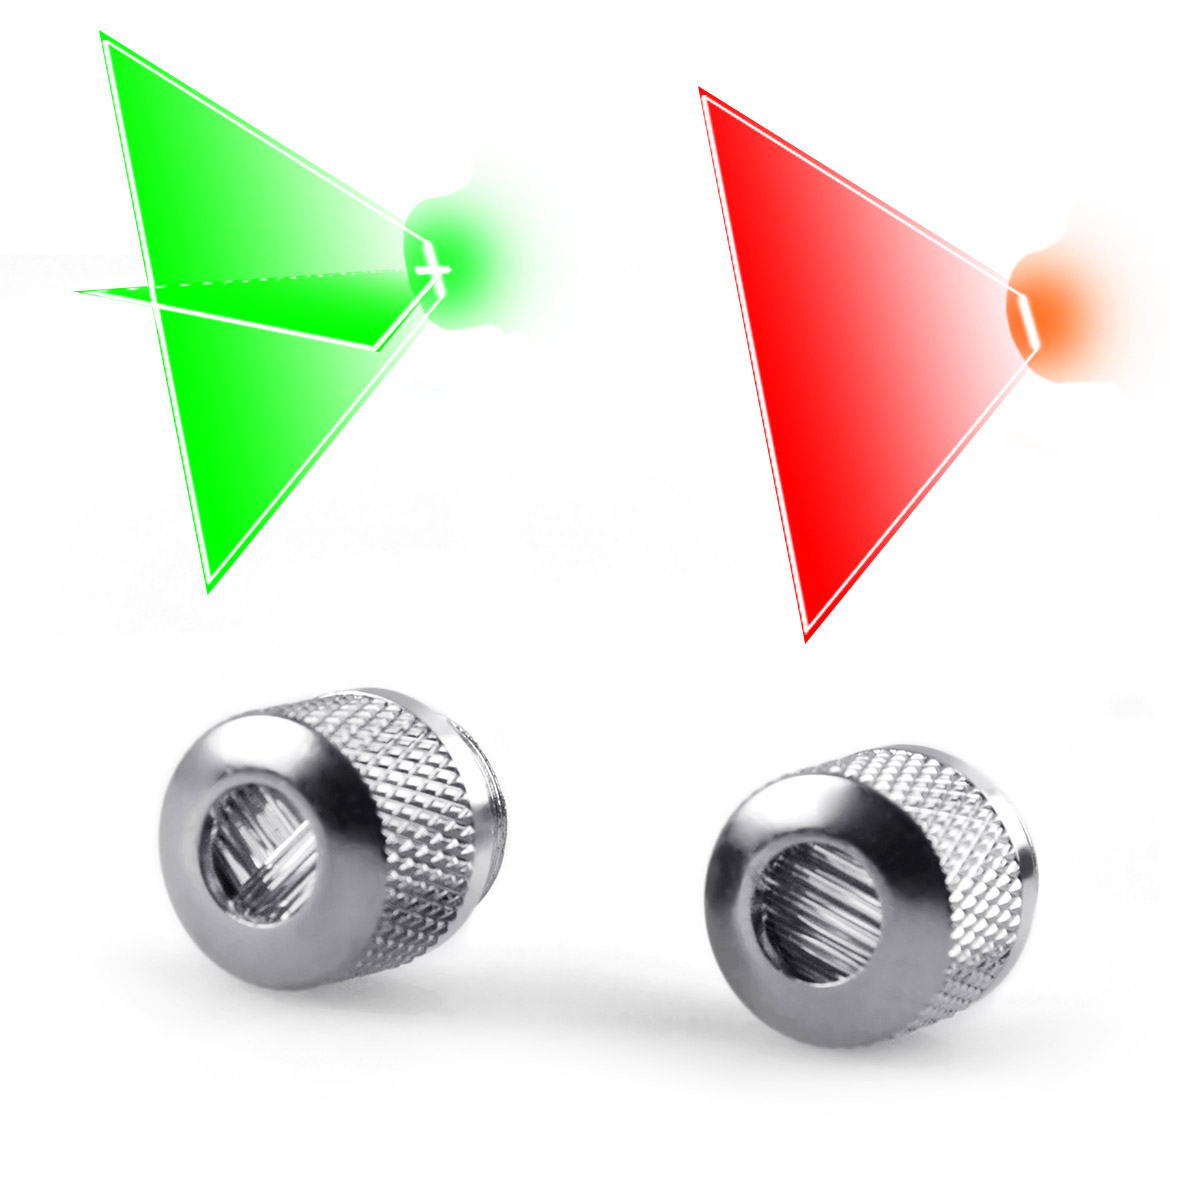 Line Beam / Cross Beam Head Cap for Laser Pointers and Laser Level (Silver)